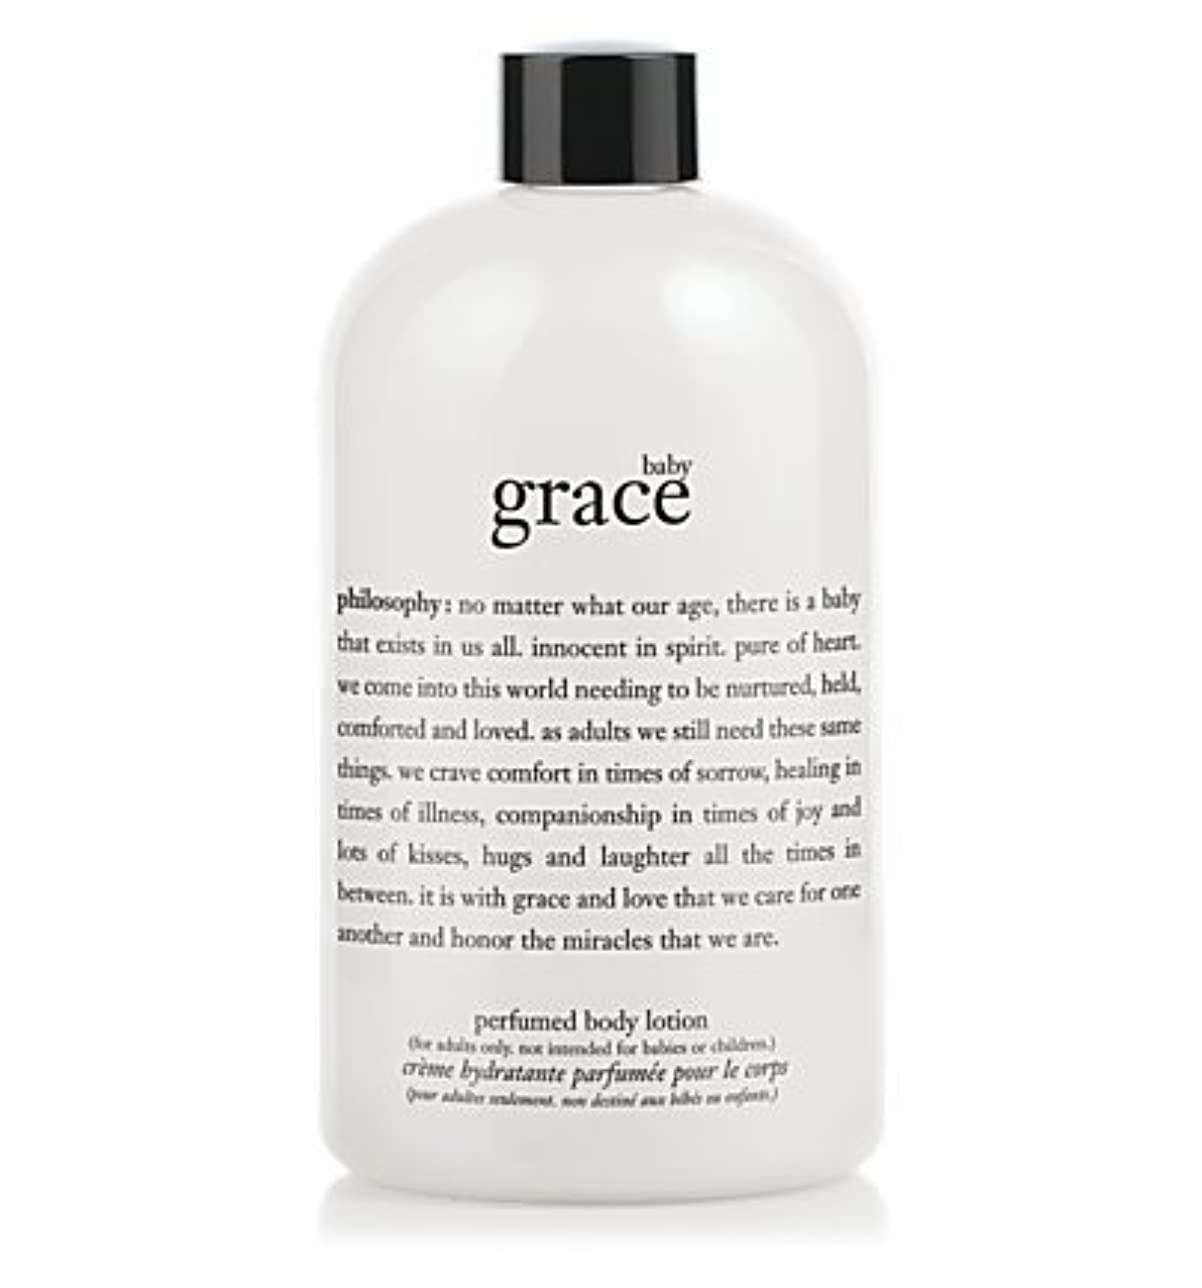 交換操る半導体baby grace (ベビーグレイス ) 16.0 oz (480 ml) perfumed body lotion for Women